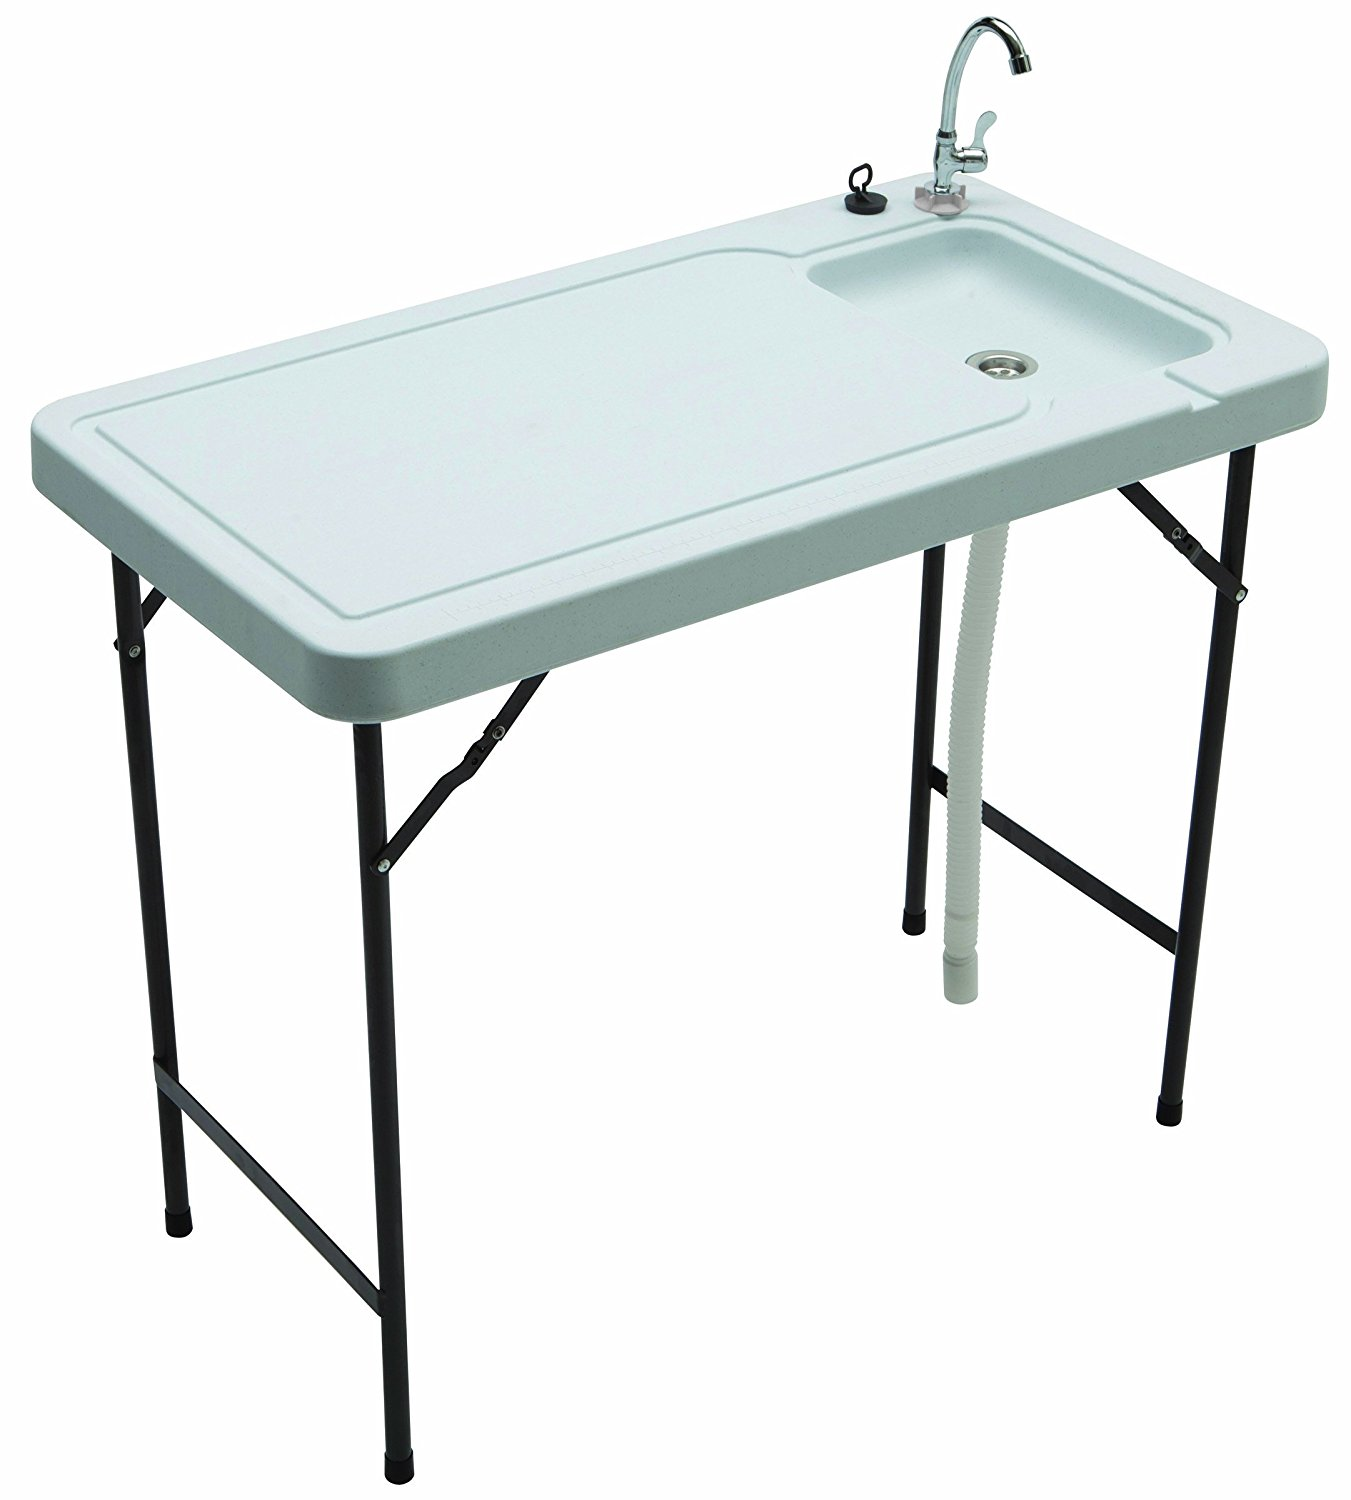 TRICAM MT-2 Outdoor Fish and Game Cleaning Table with Qui...